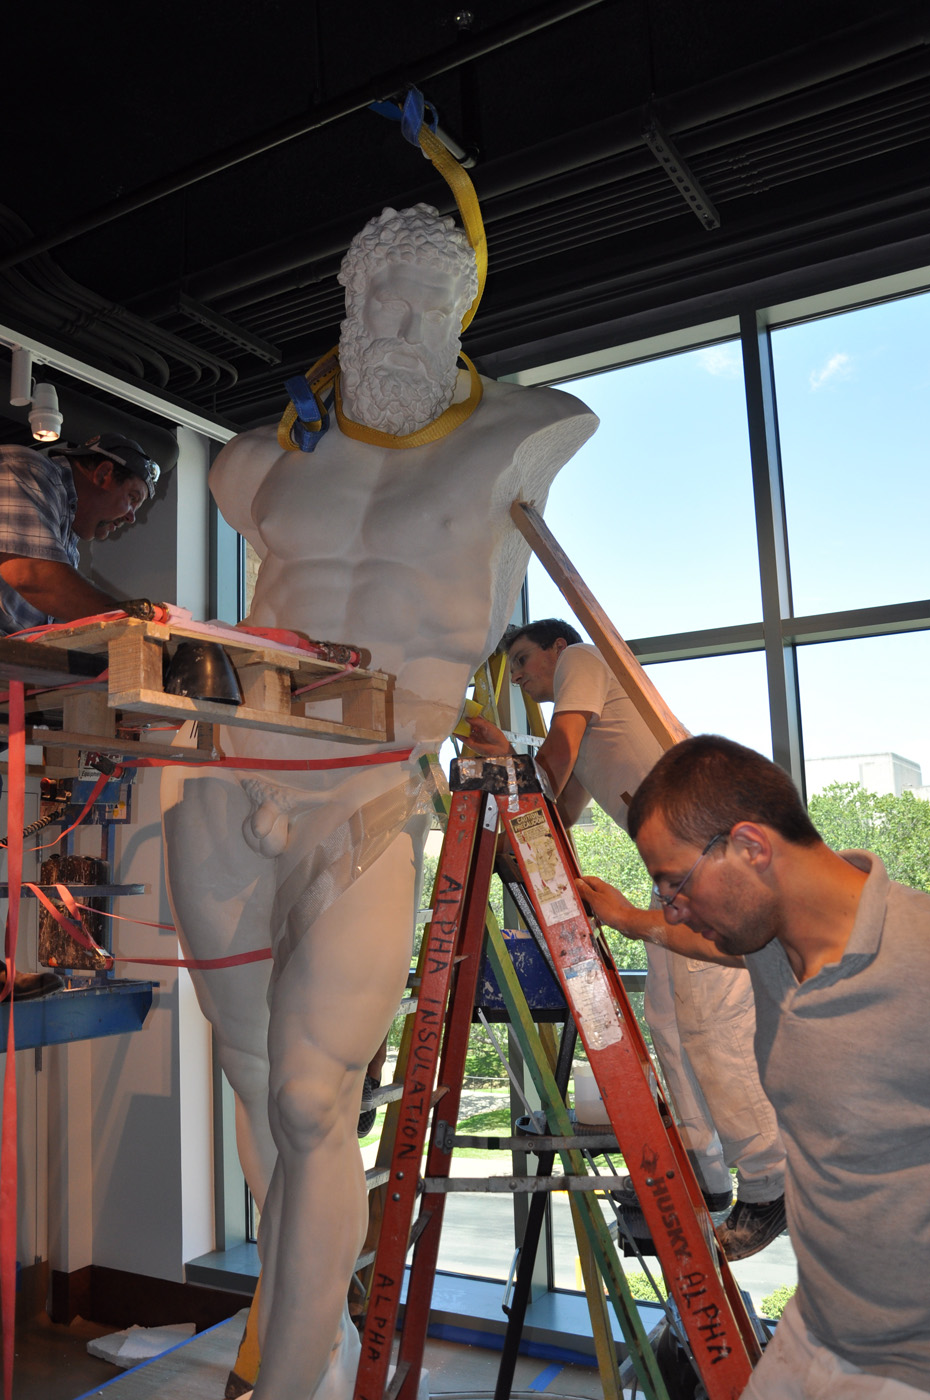 The statue of the Farnese Hercules strapped and being installed, while three men work on it, in the main lobby, in 2009.